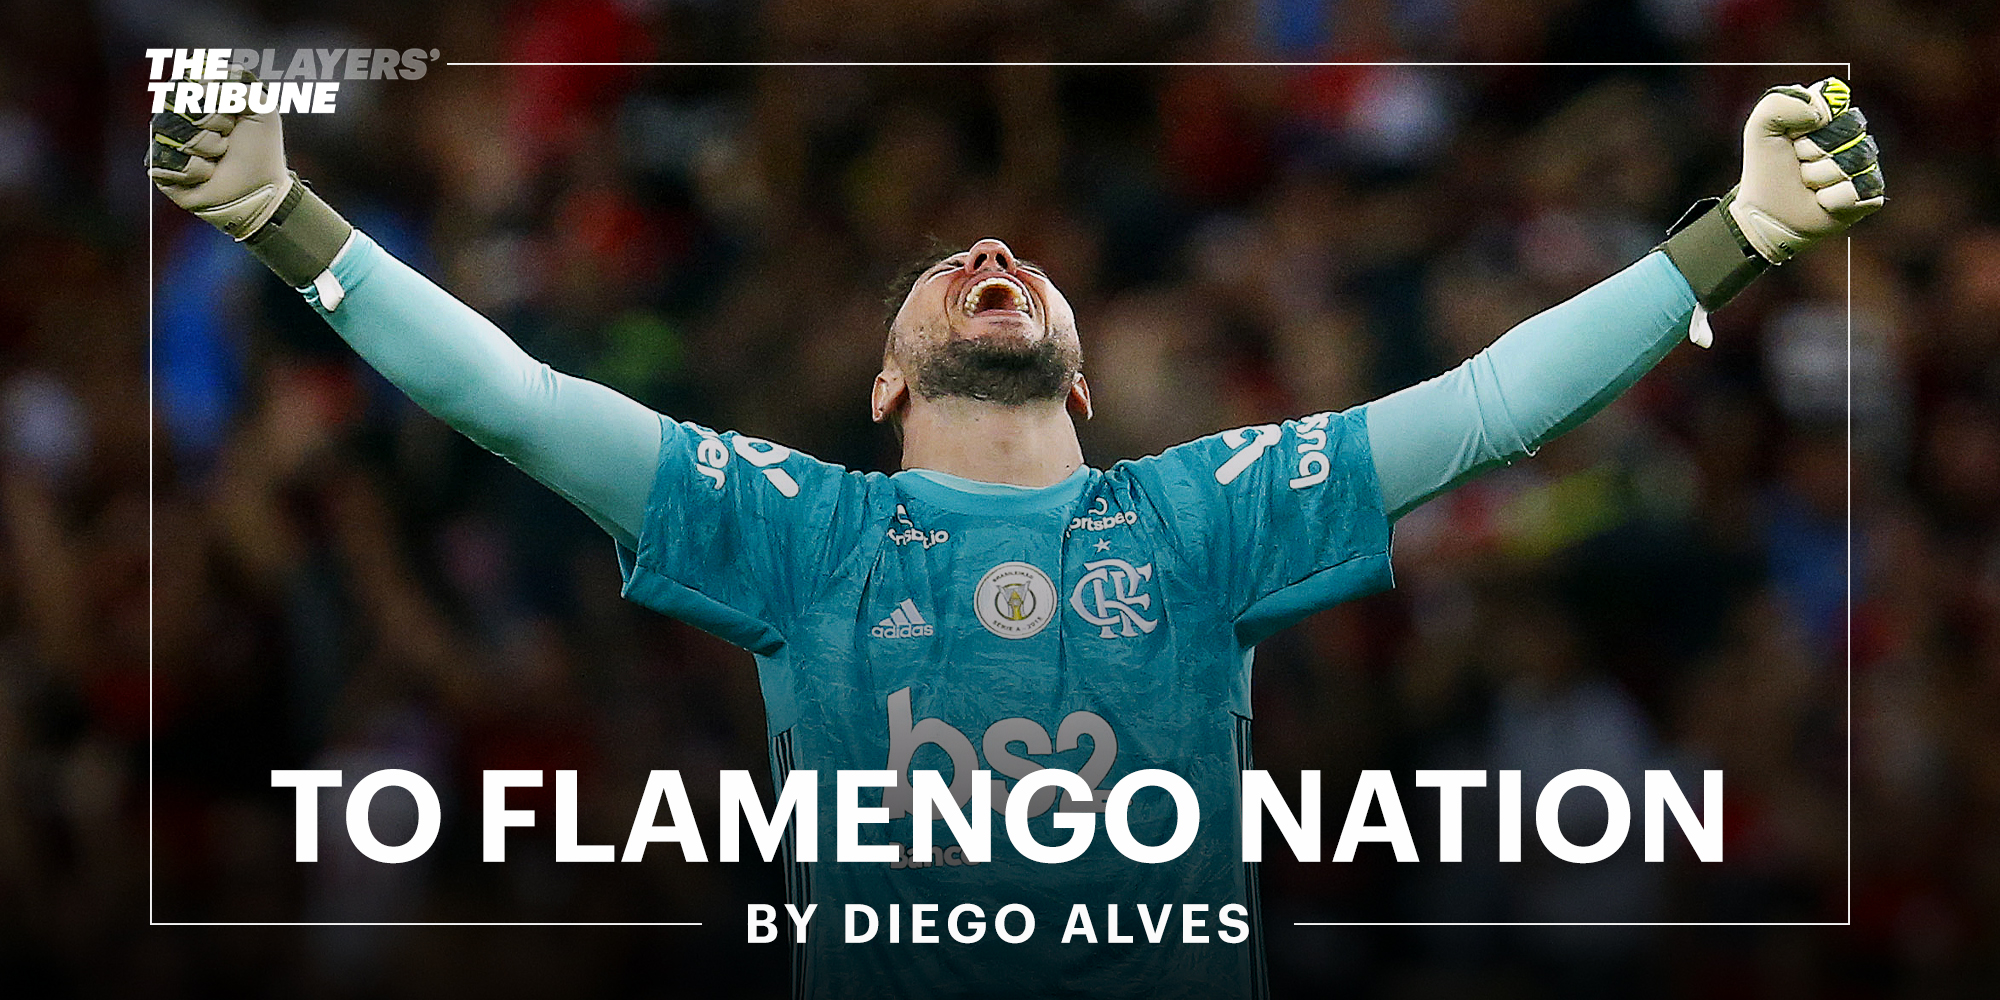 To Flamengo Nation